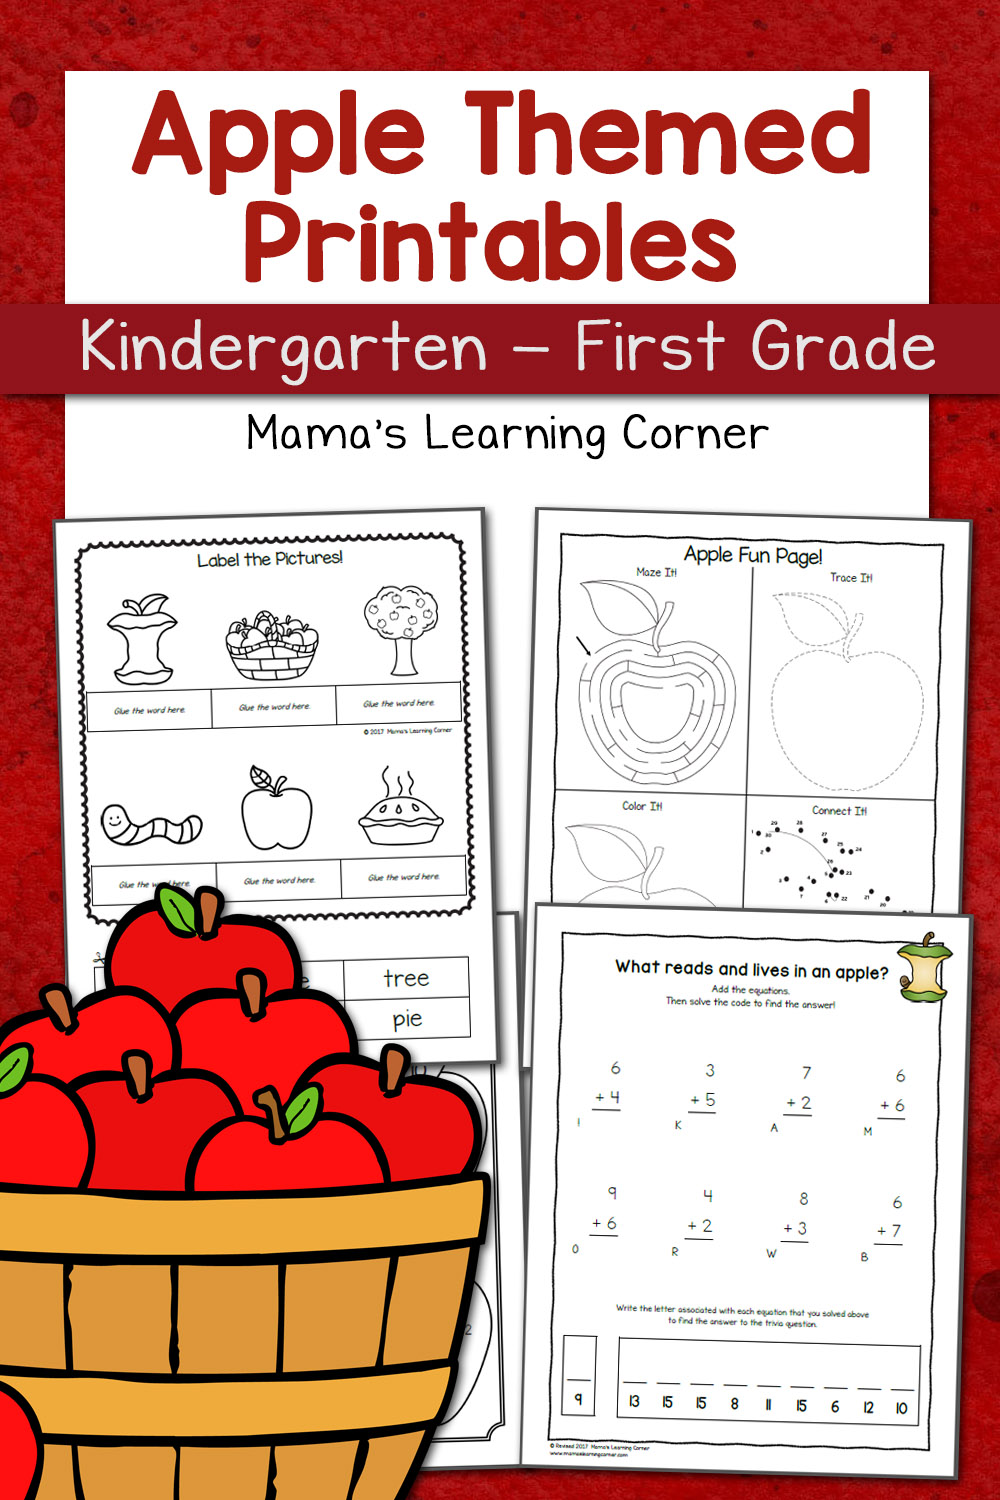 hight resolution of Apple Worksheets for Kindergarten-First Grade - Mamas Learning Corner